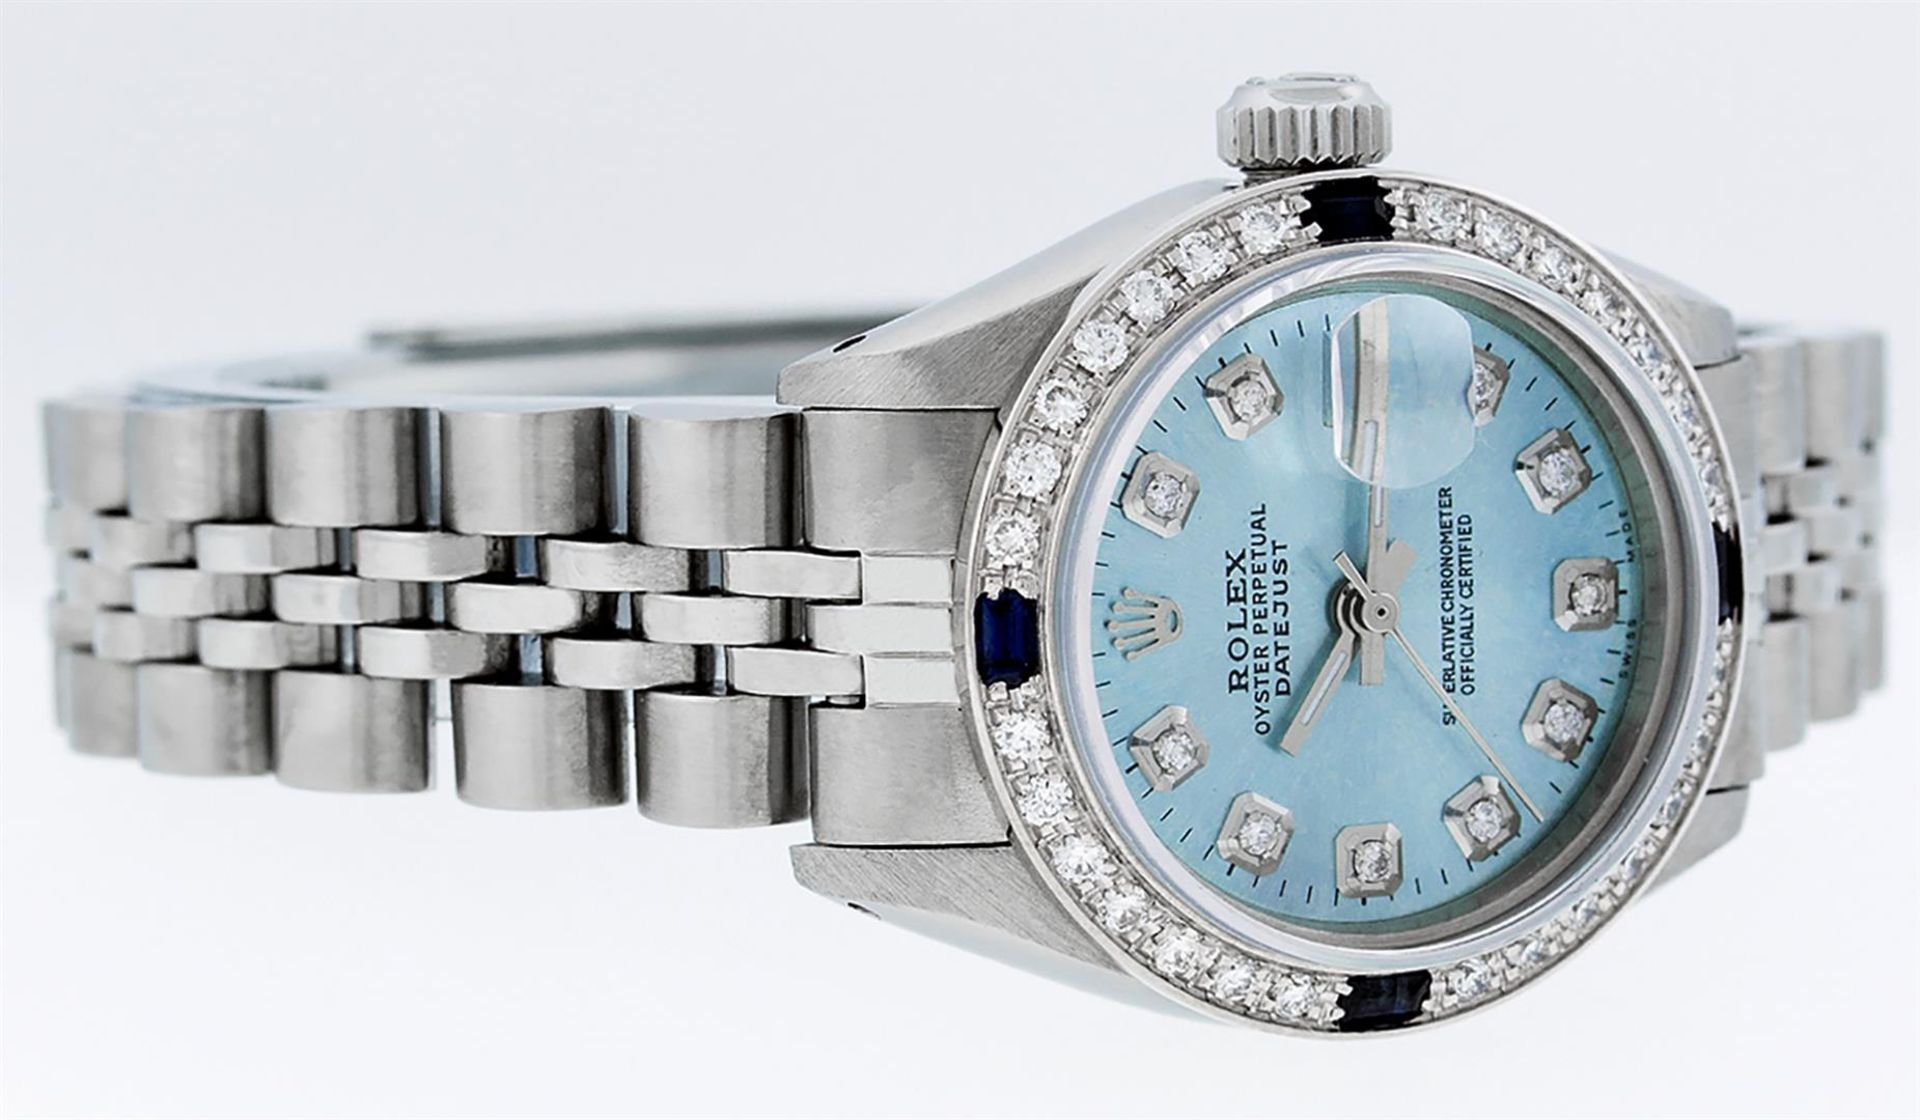 Rolex Ladies Stainless Steel Sky Blue Diamond & Sapphire Datejust Wristwatch - Image 7 of 9